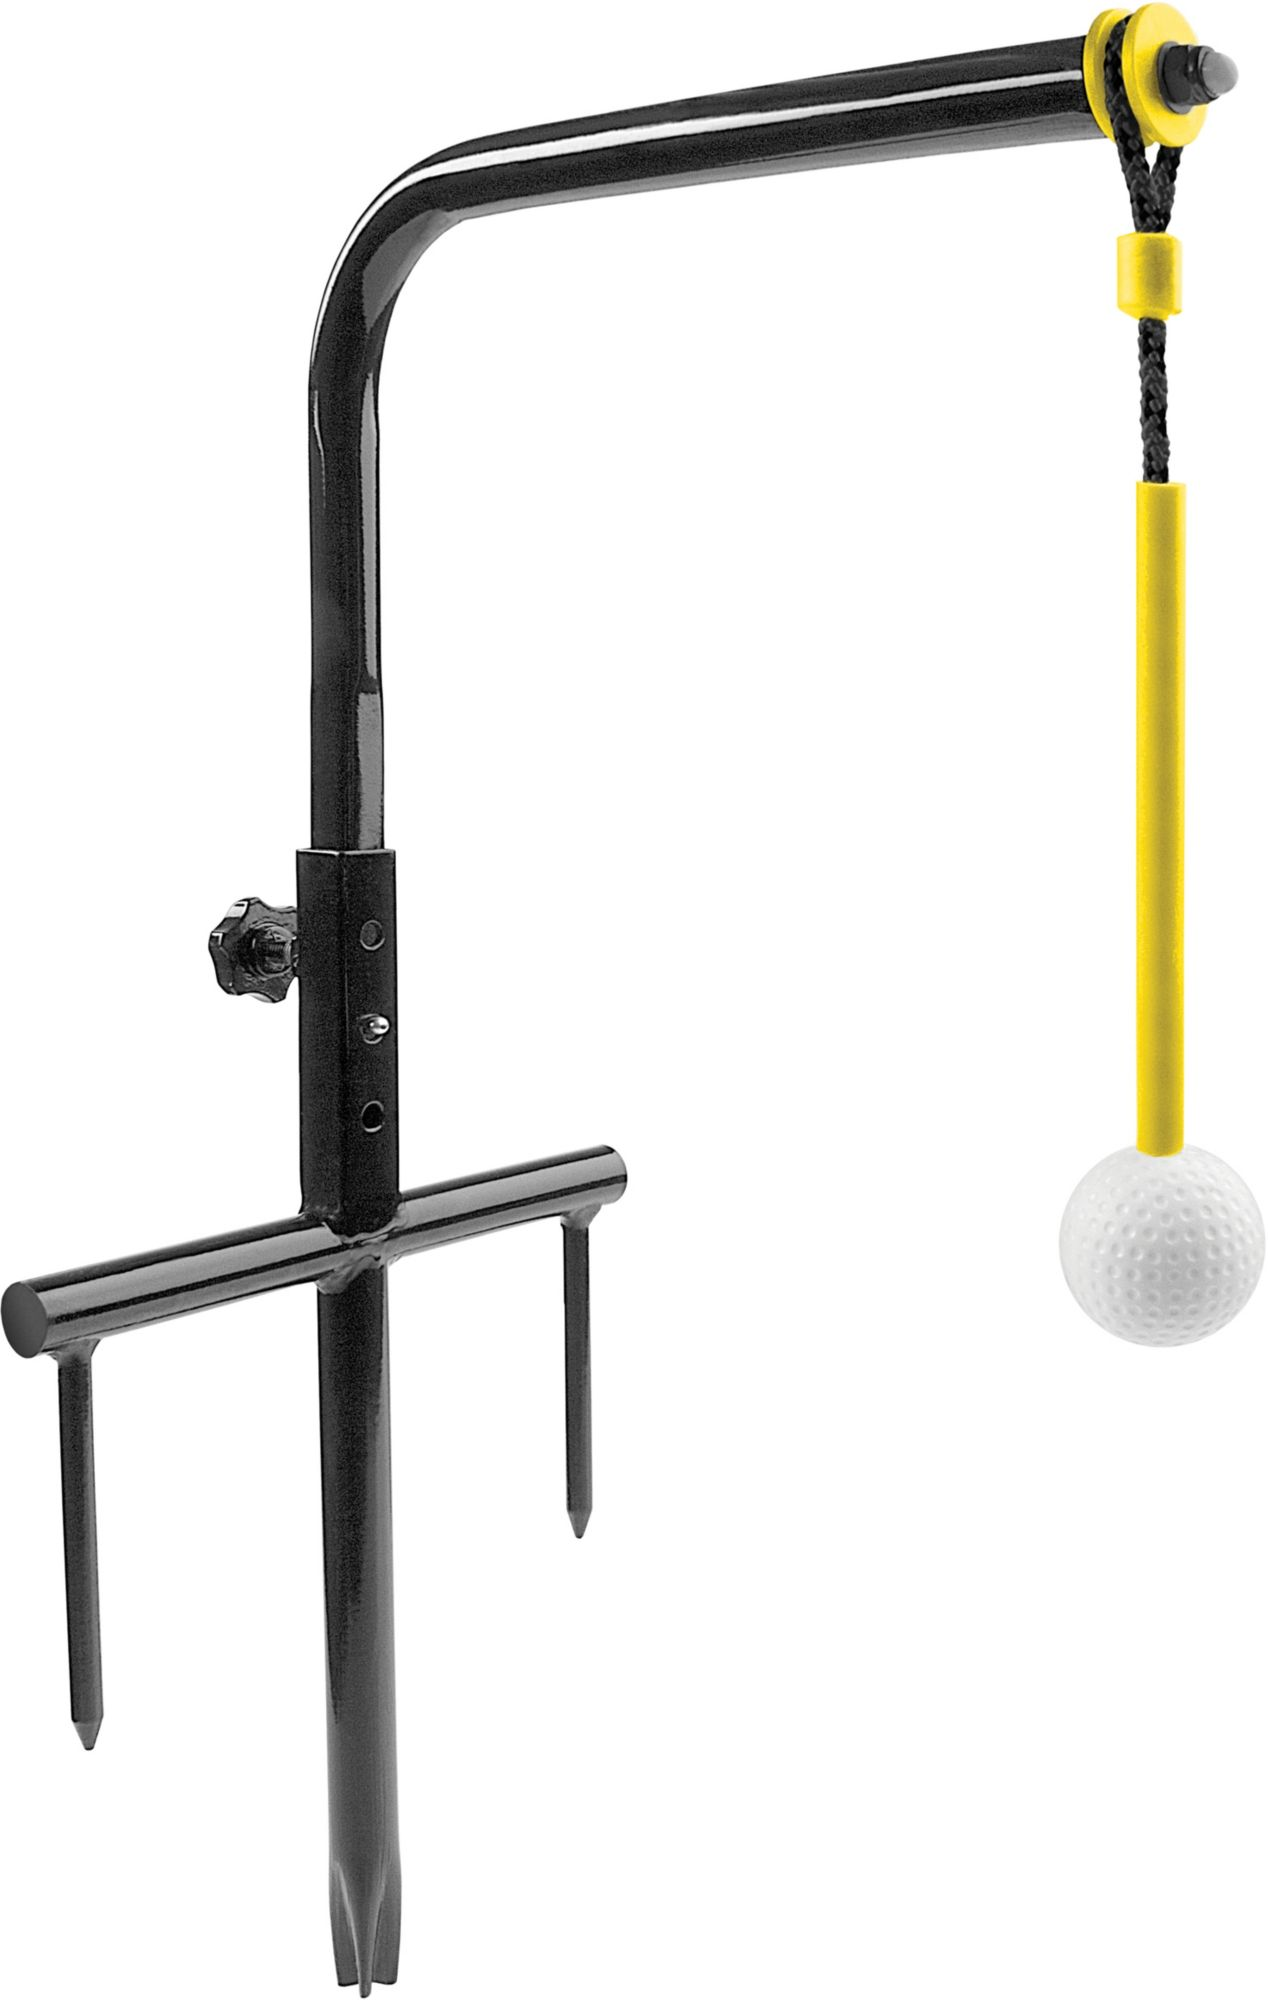 golf training black power tour proactive swing aids resistance angle trainers